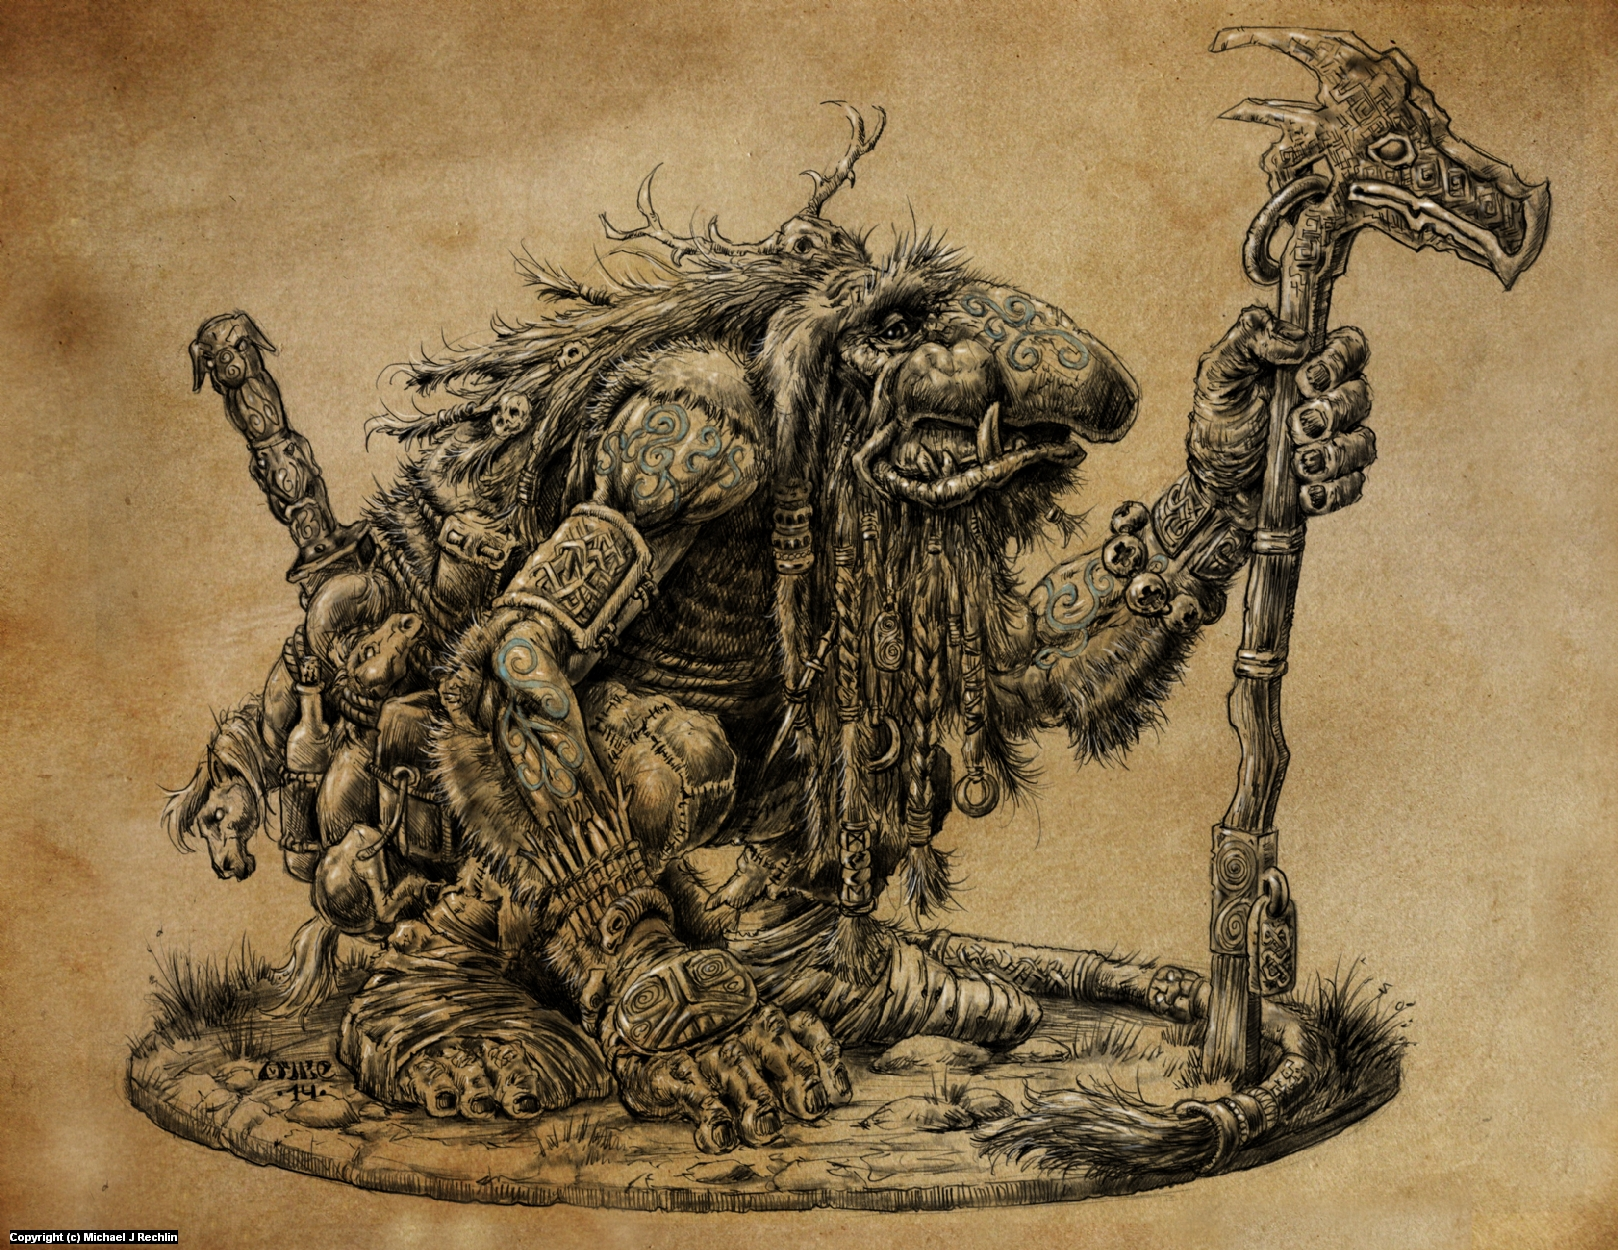 Giant Troll Mystic- Miniature Concept Artwork by Michael Rechlin